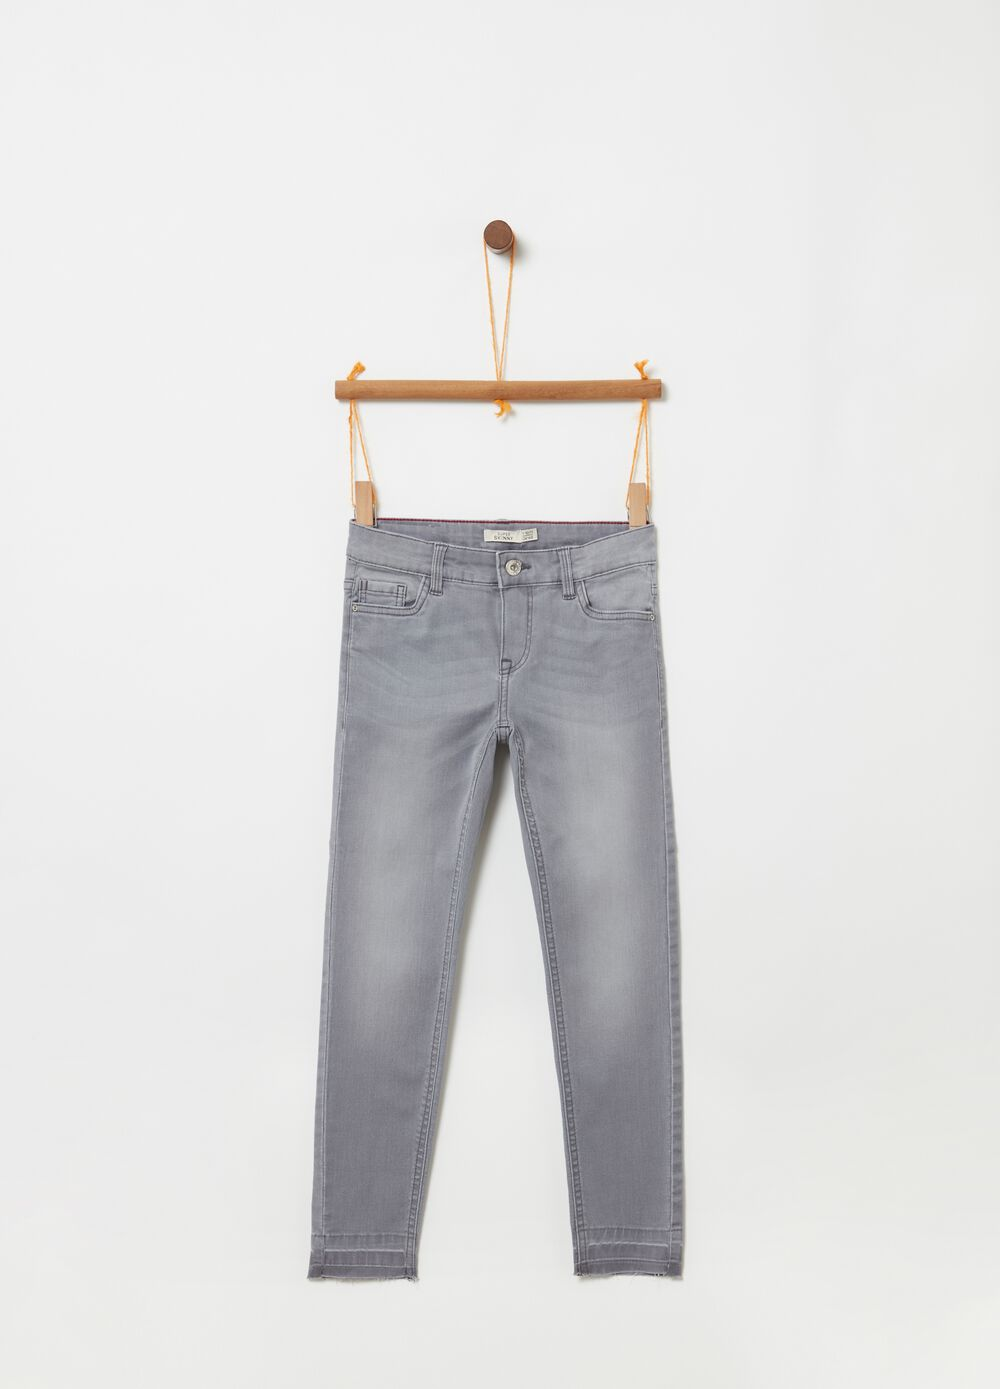 Washed stretch jeans with five pockets